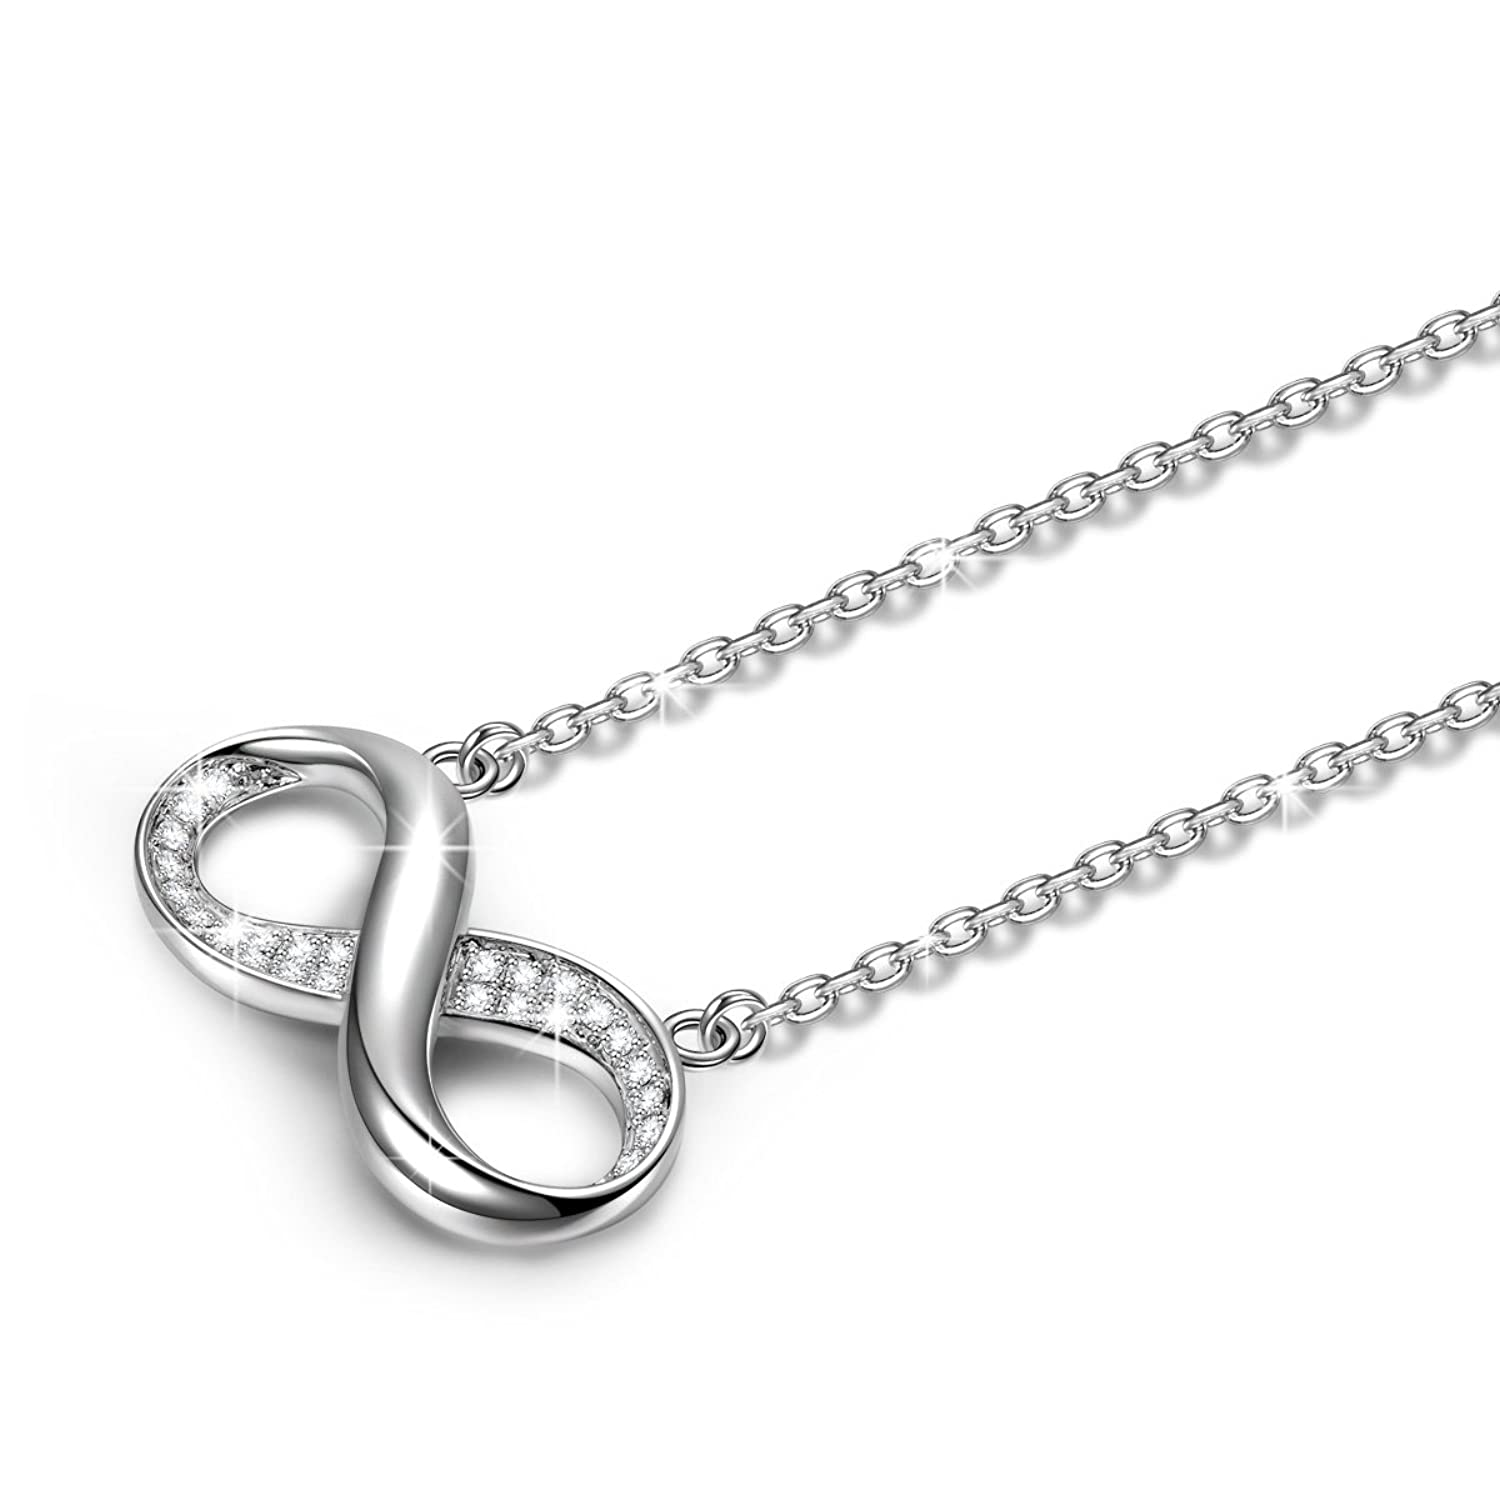 LADY COLOUR Infinity Pendant Necklace for Women with Crystals from SWAROVSKI® - Allergen-free and Passed SGS Inspection 5qfp9LrQl